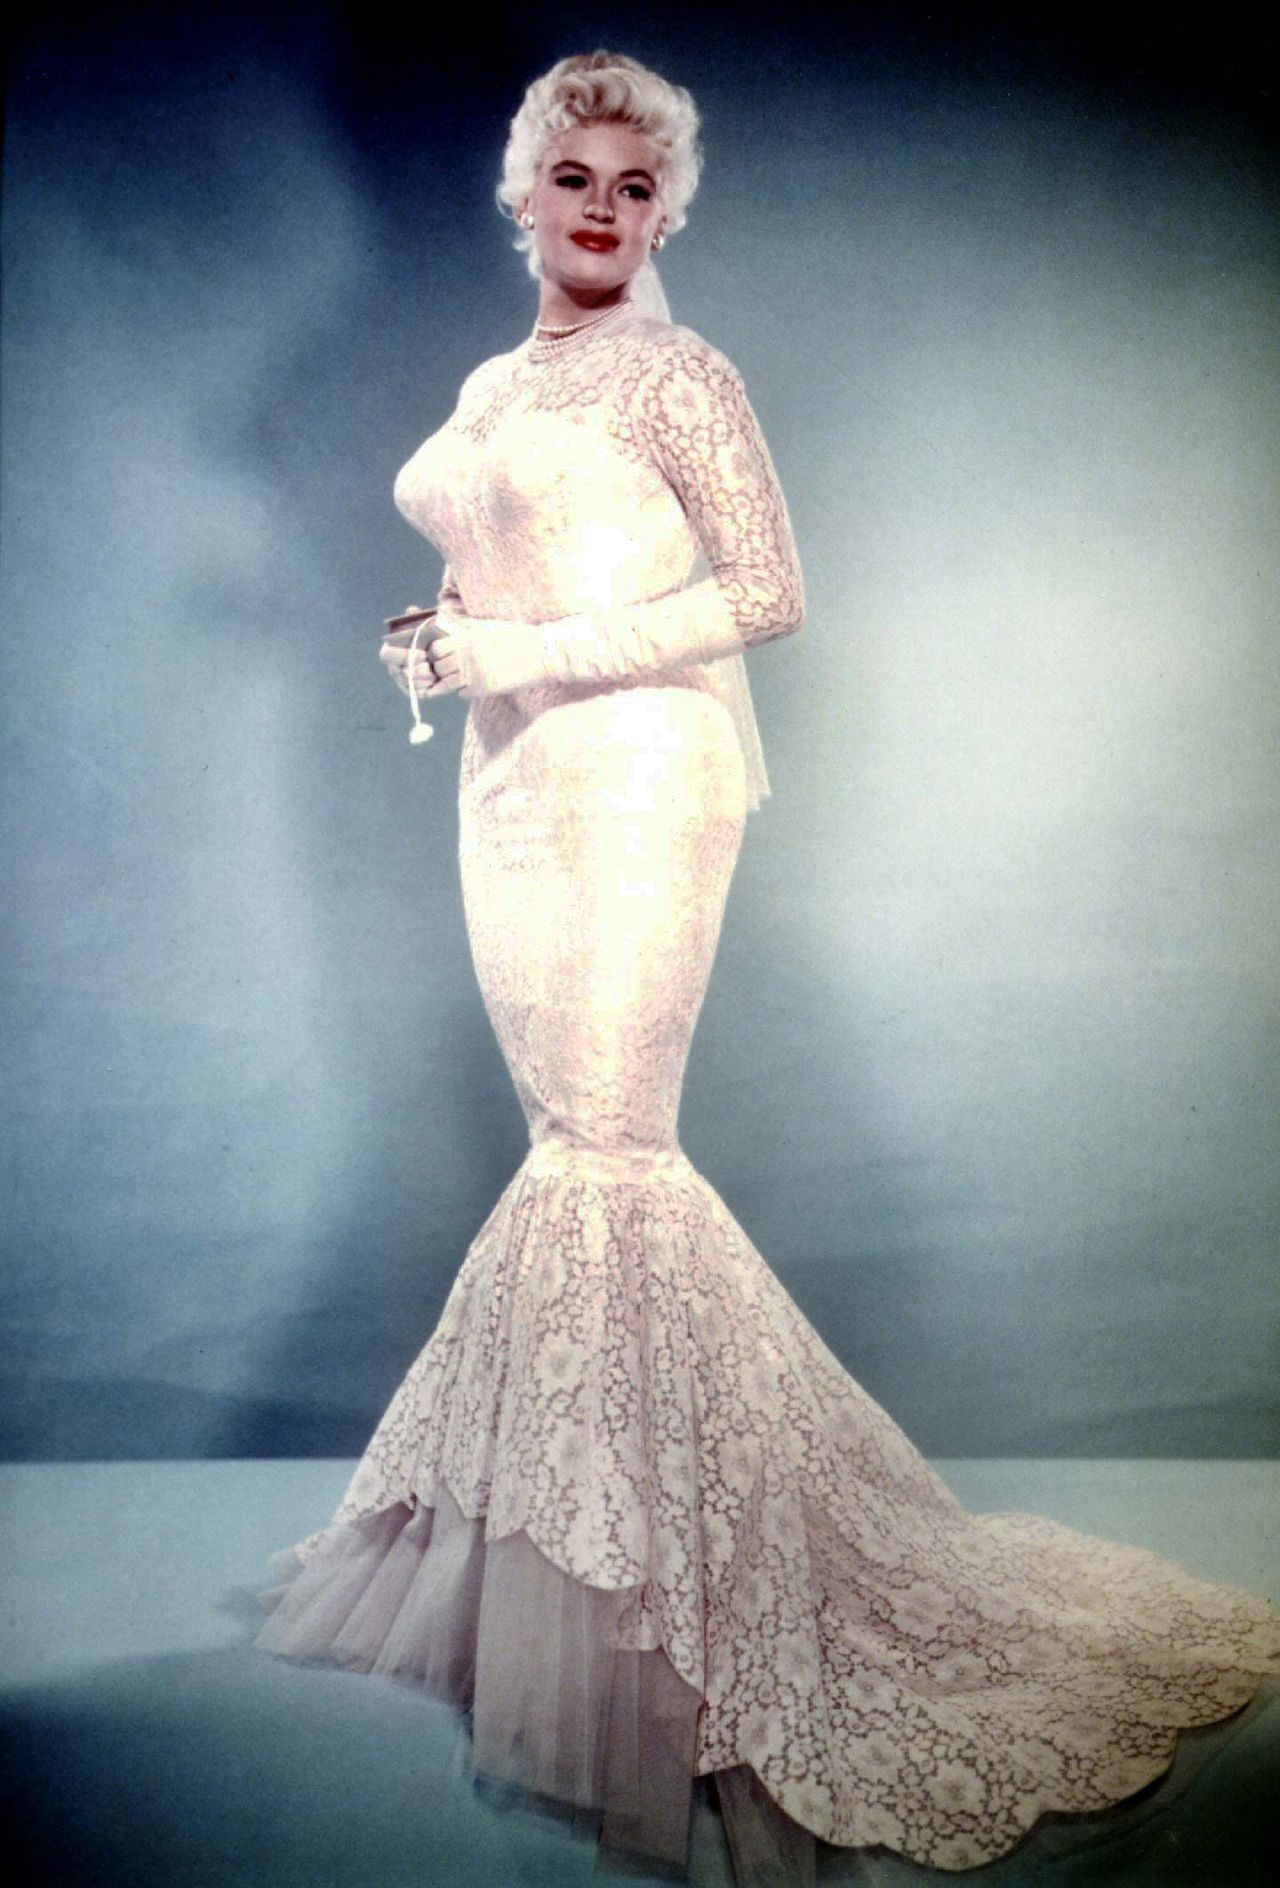 The Mermaid Gown-Iconic \